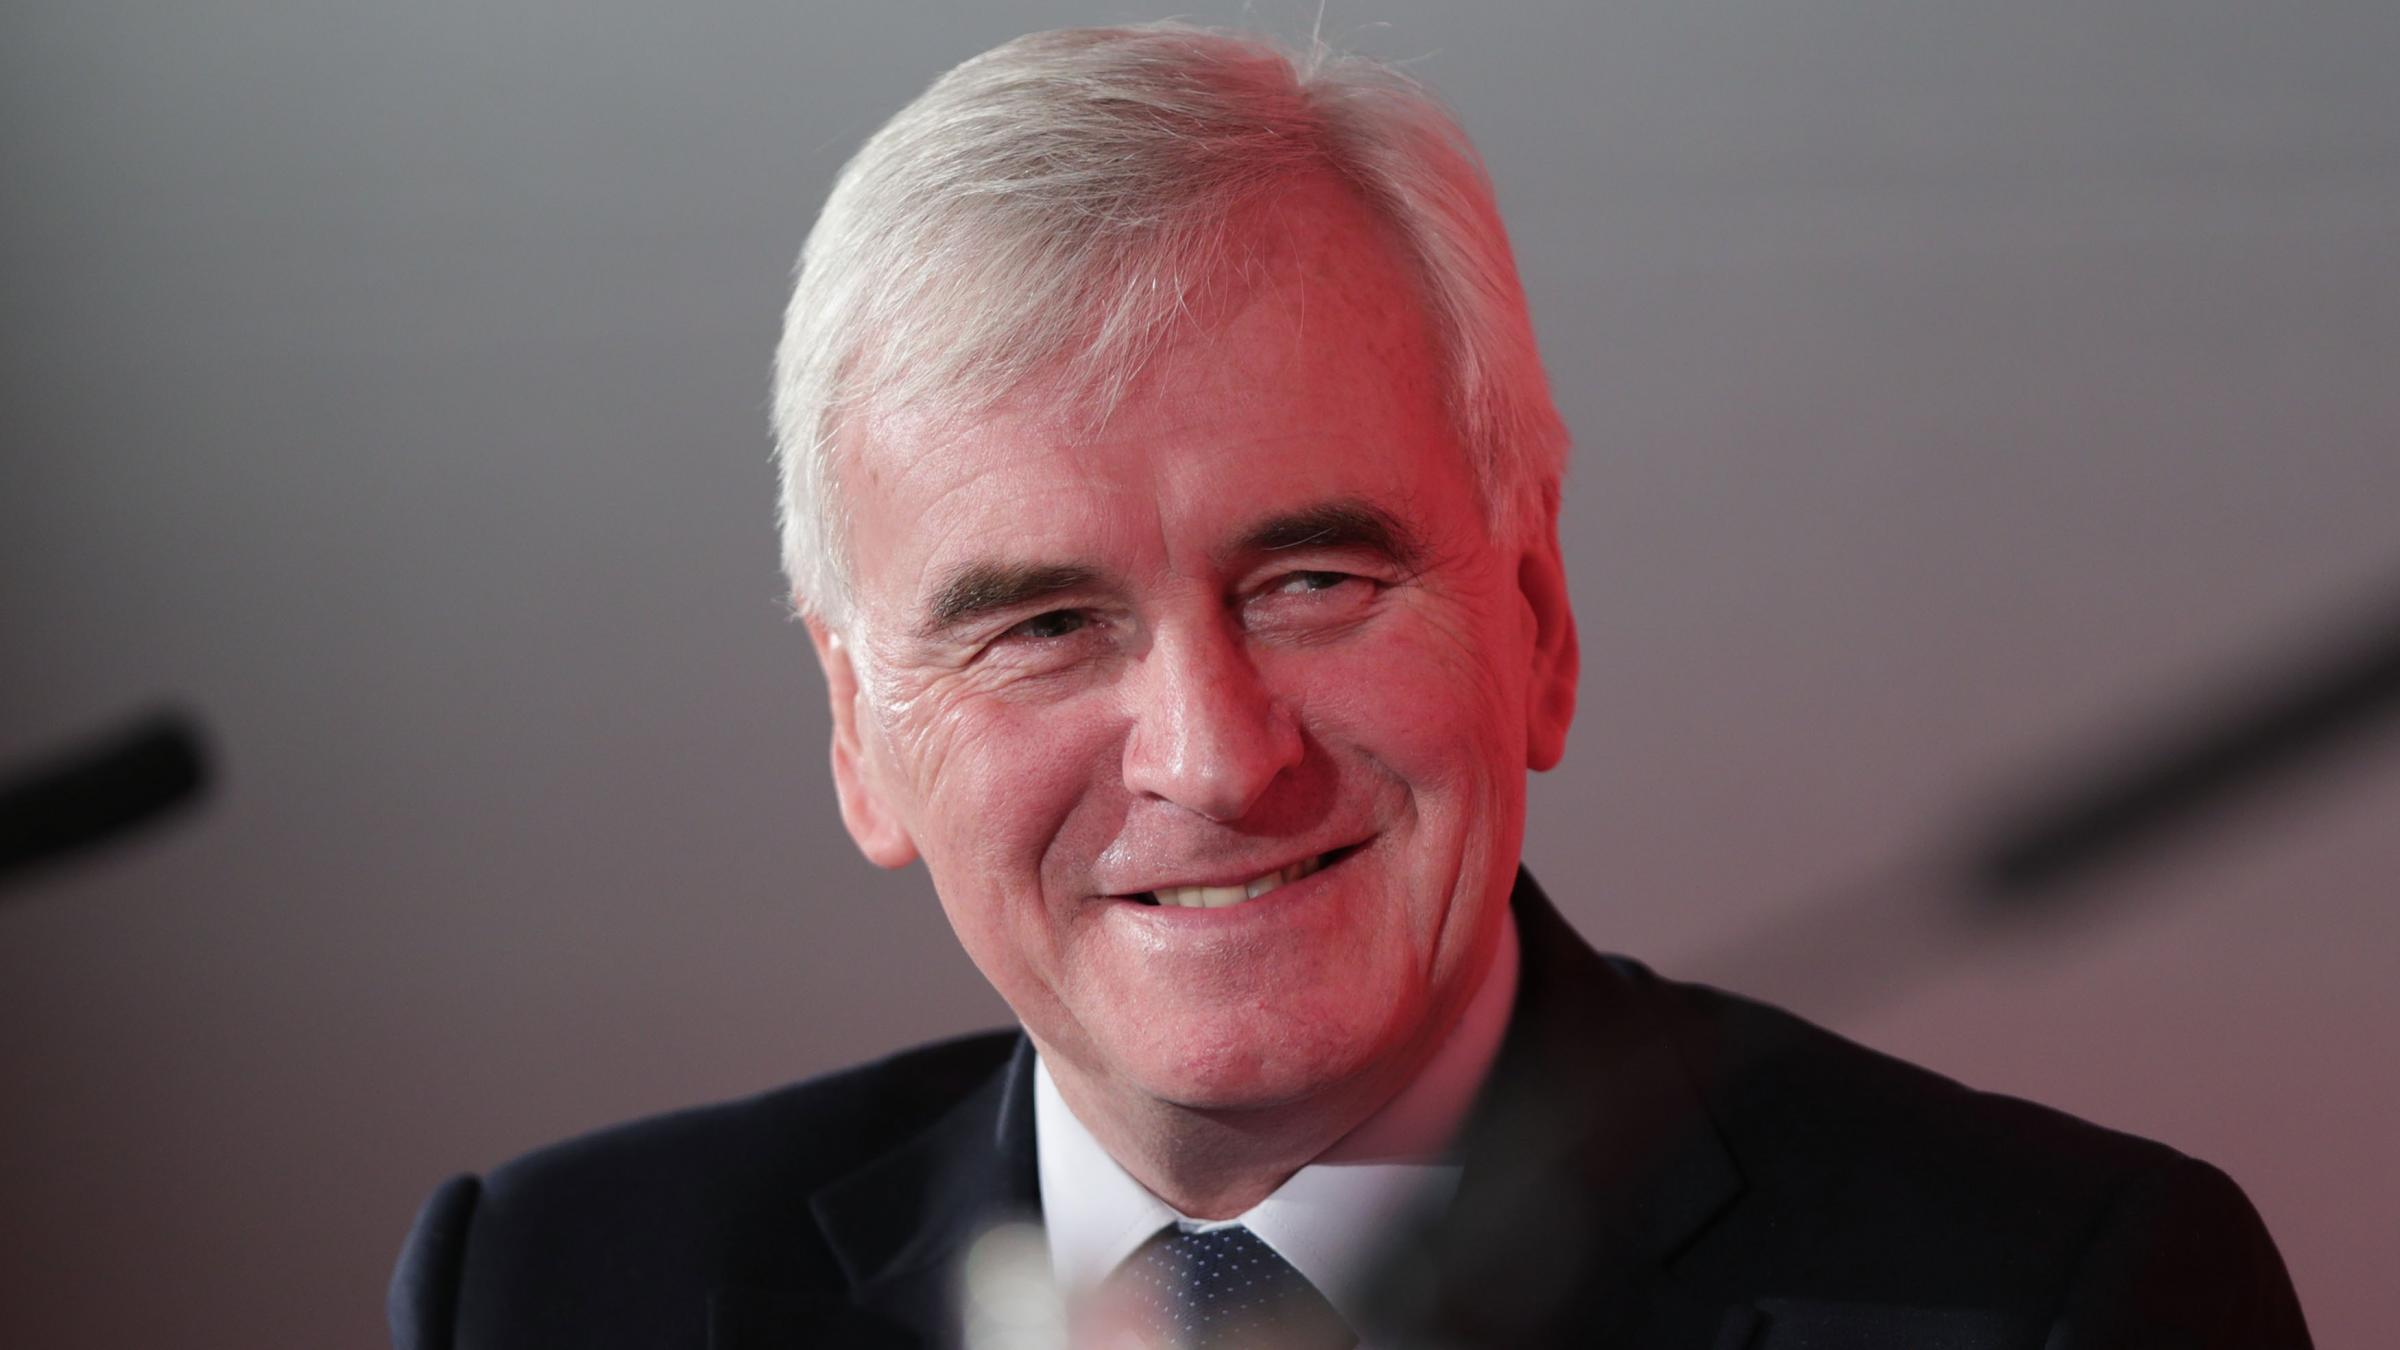 John McDonnell comes under fire for Gaza attempted genocide claim